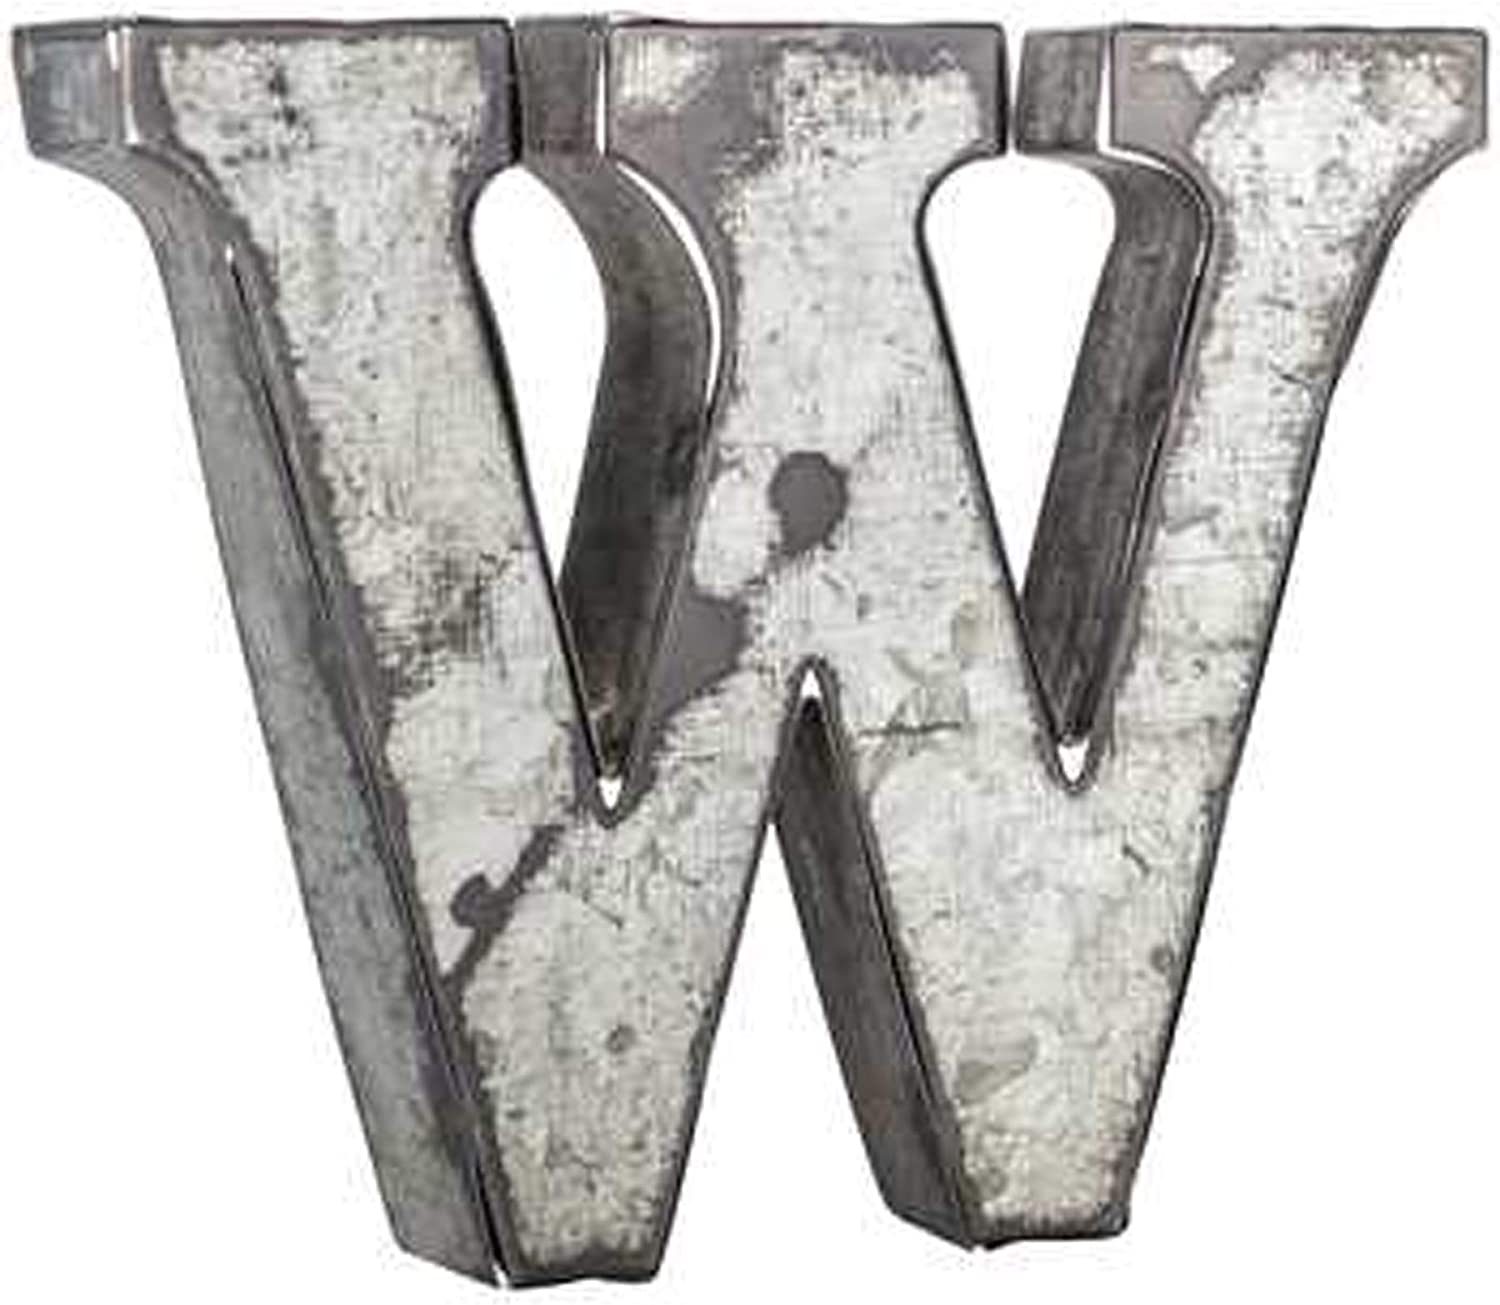 Wisechoice Decorative Alphabet Metal Wall Decor Letter W | Perfect for Home Display -Silver, 3.75 Inch L x 3.5 Inch W